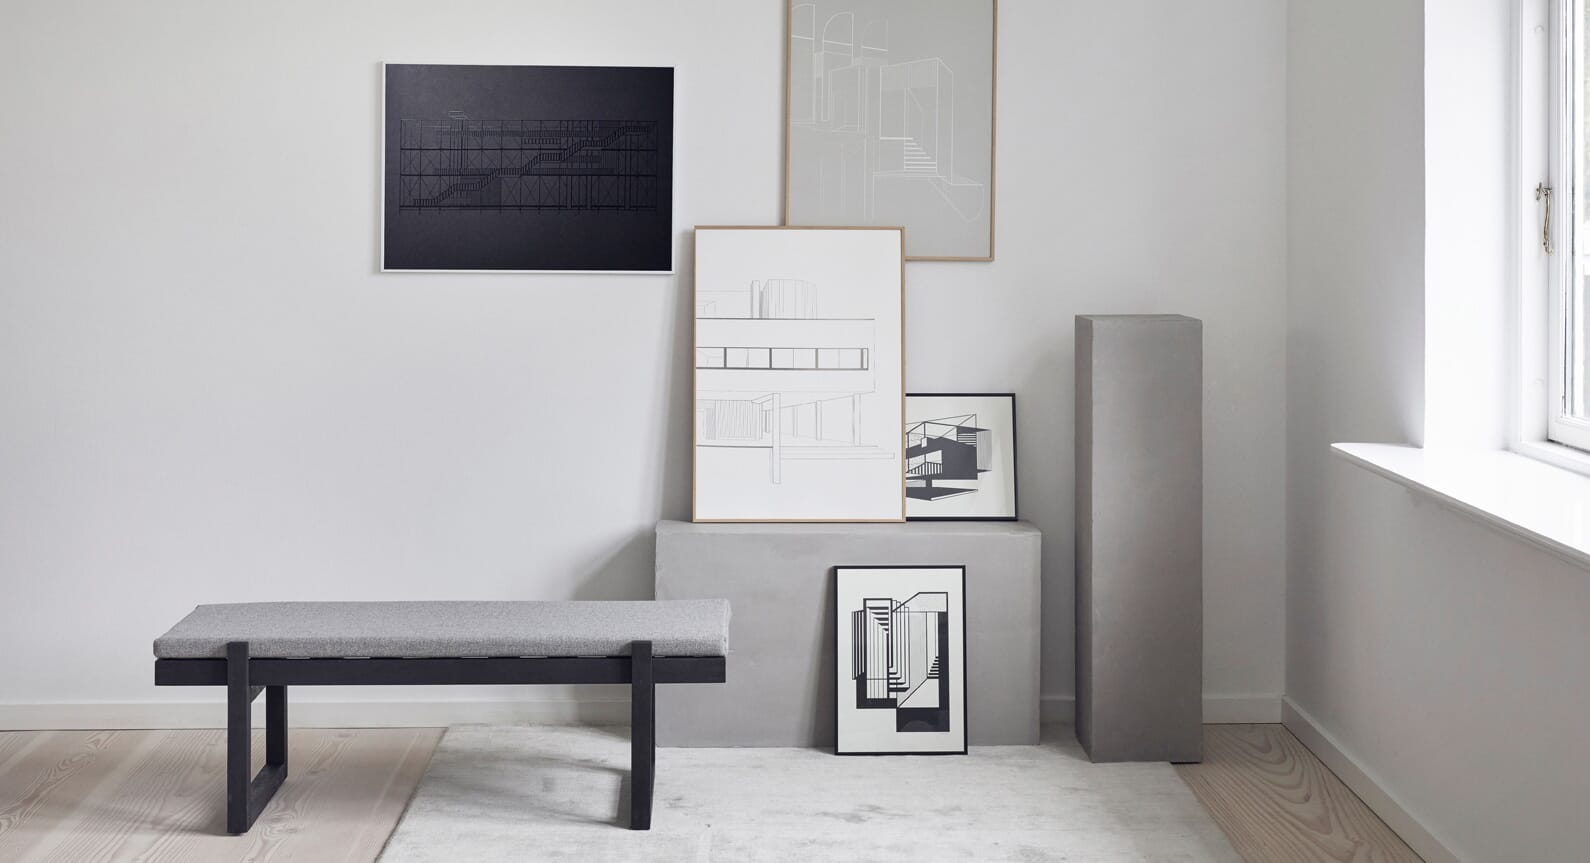 How To Decorate Your Home The Danish Way Courtesy of Kristina Dam